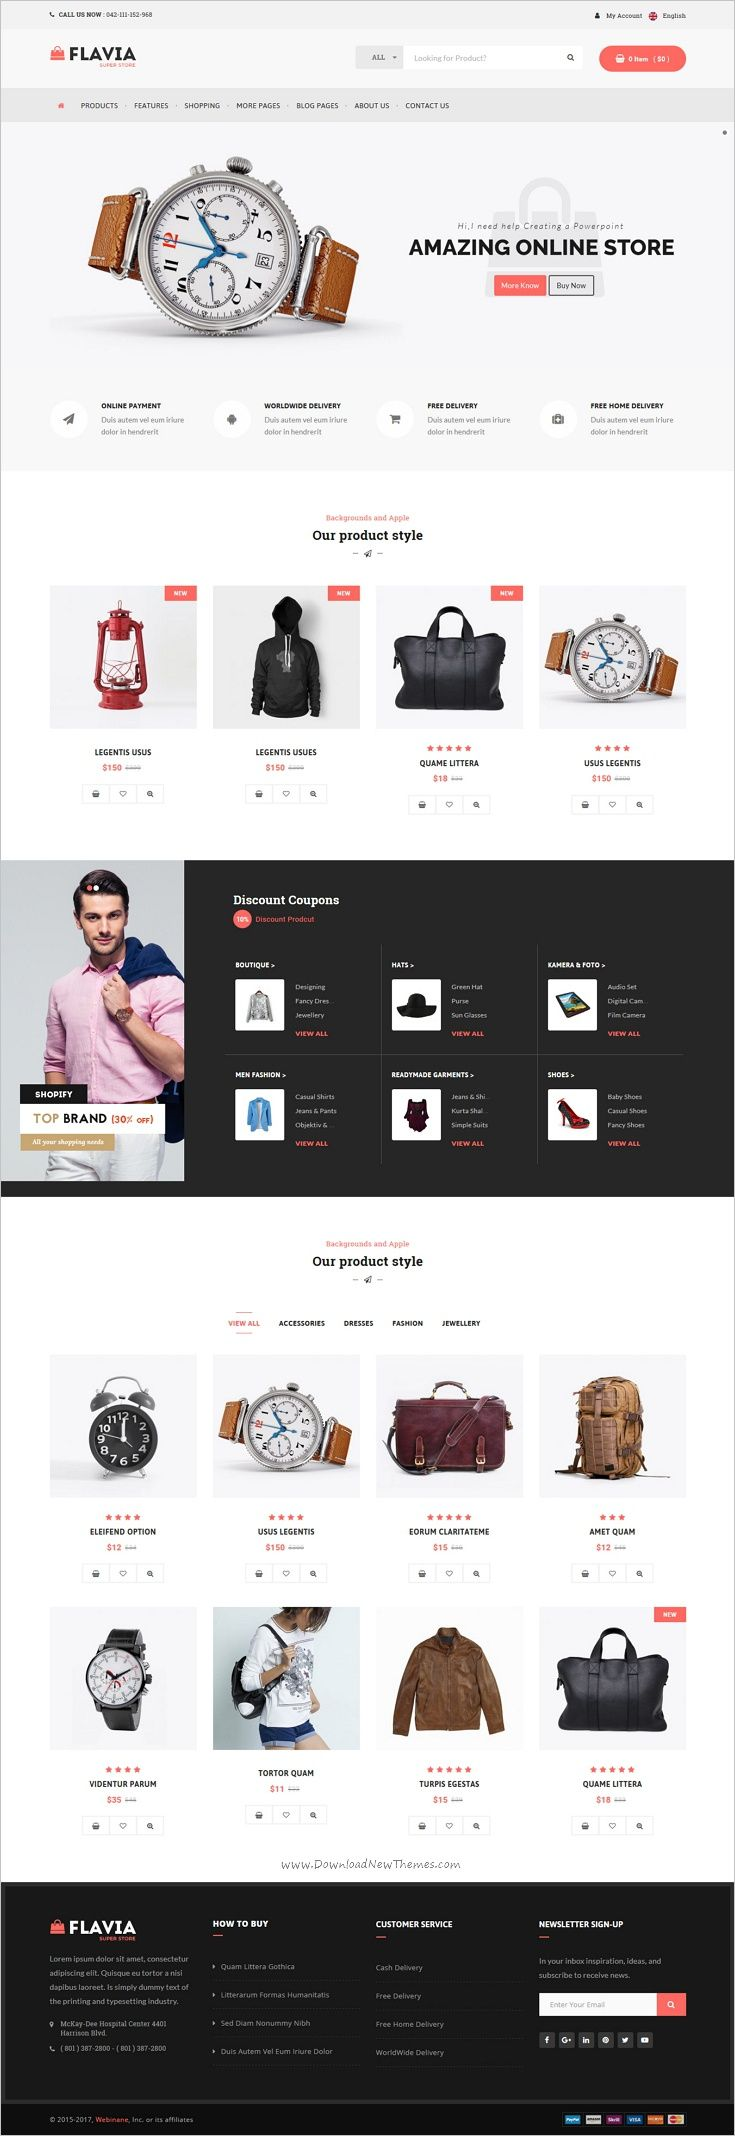 Flavia is a wonderful responsive #WooCommerce #WordPress #theme for multipurpose eCommerce website with 7+ pre-built homepages download now➩ https://themeforest.net/item/flavia-download-responsive-woocommerce-wordpress-theme/18030189?ref=Datasata